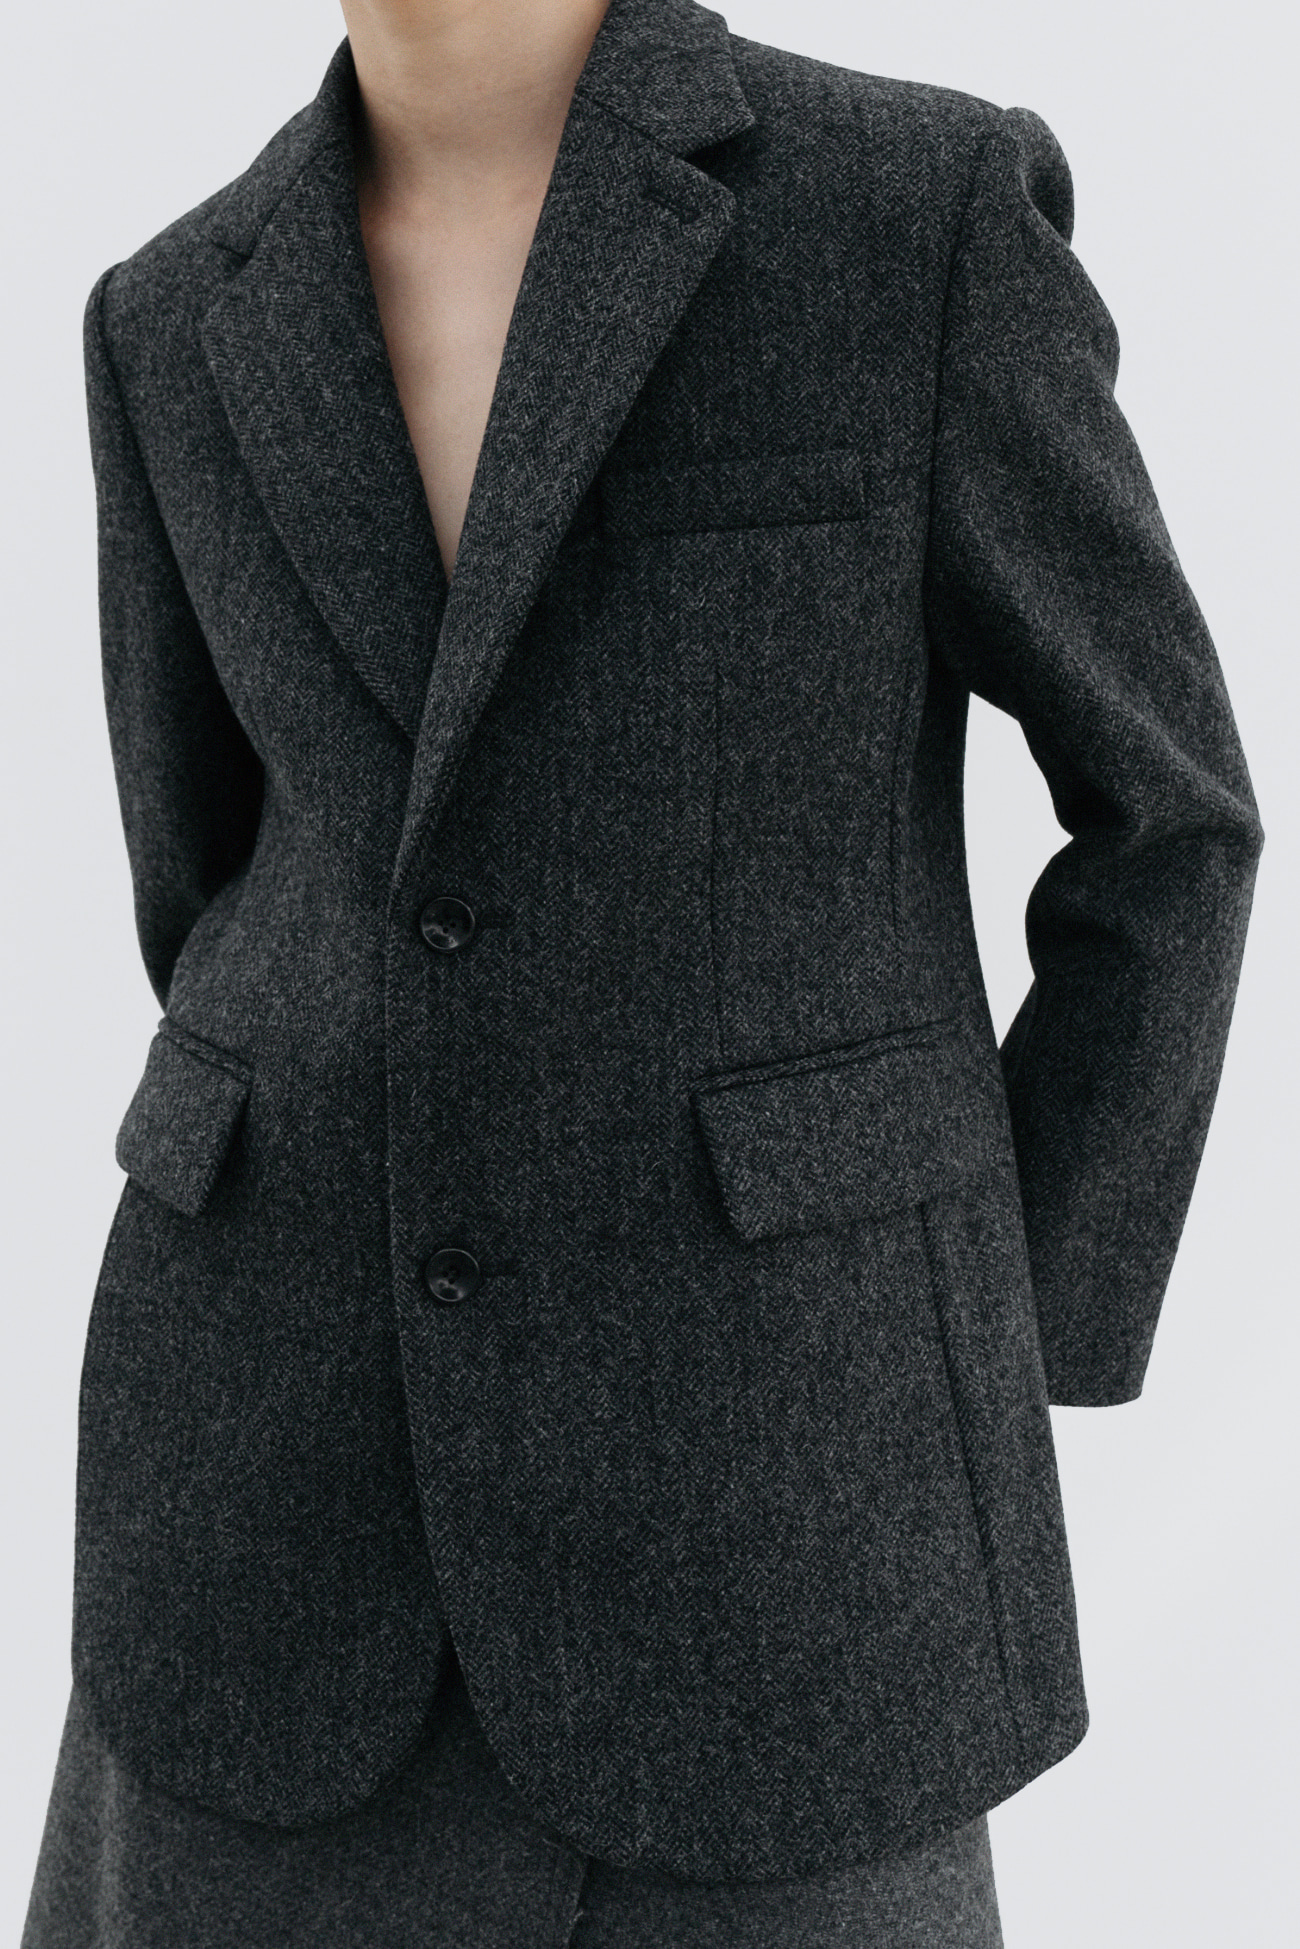 HIGH QUALITY LINE - Abraham Moon Tweed Jacket (GRAY)